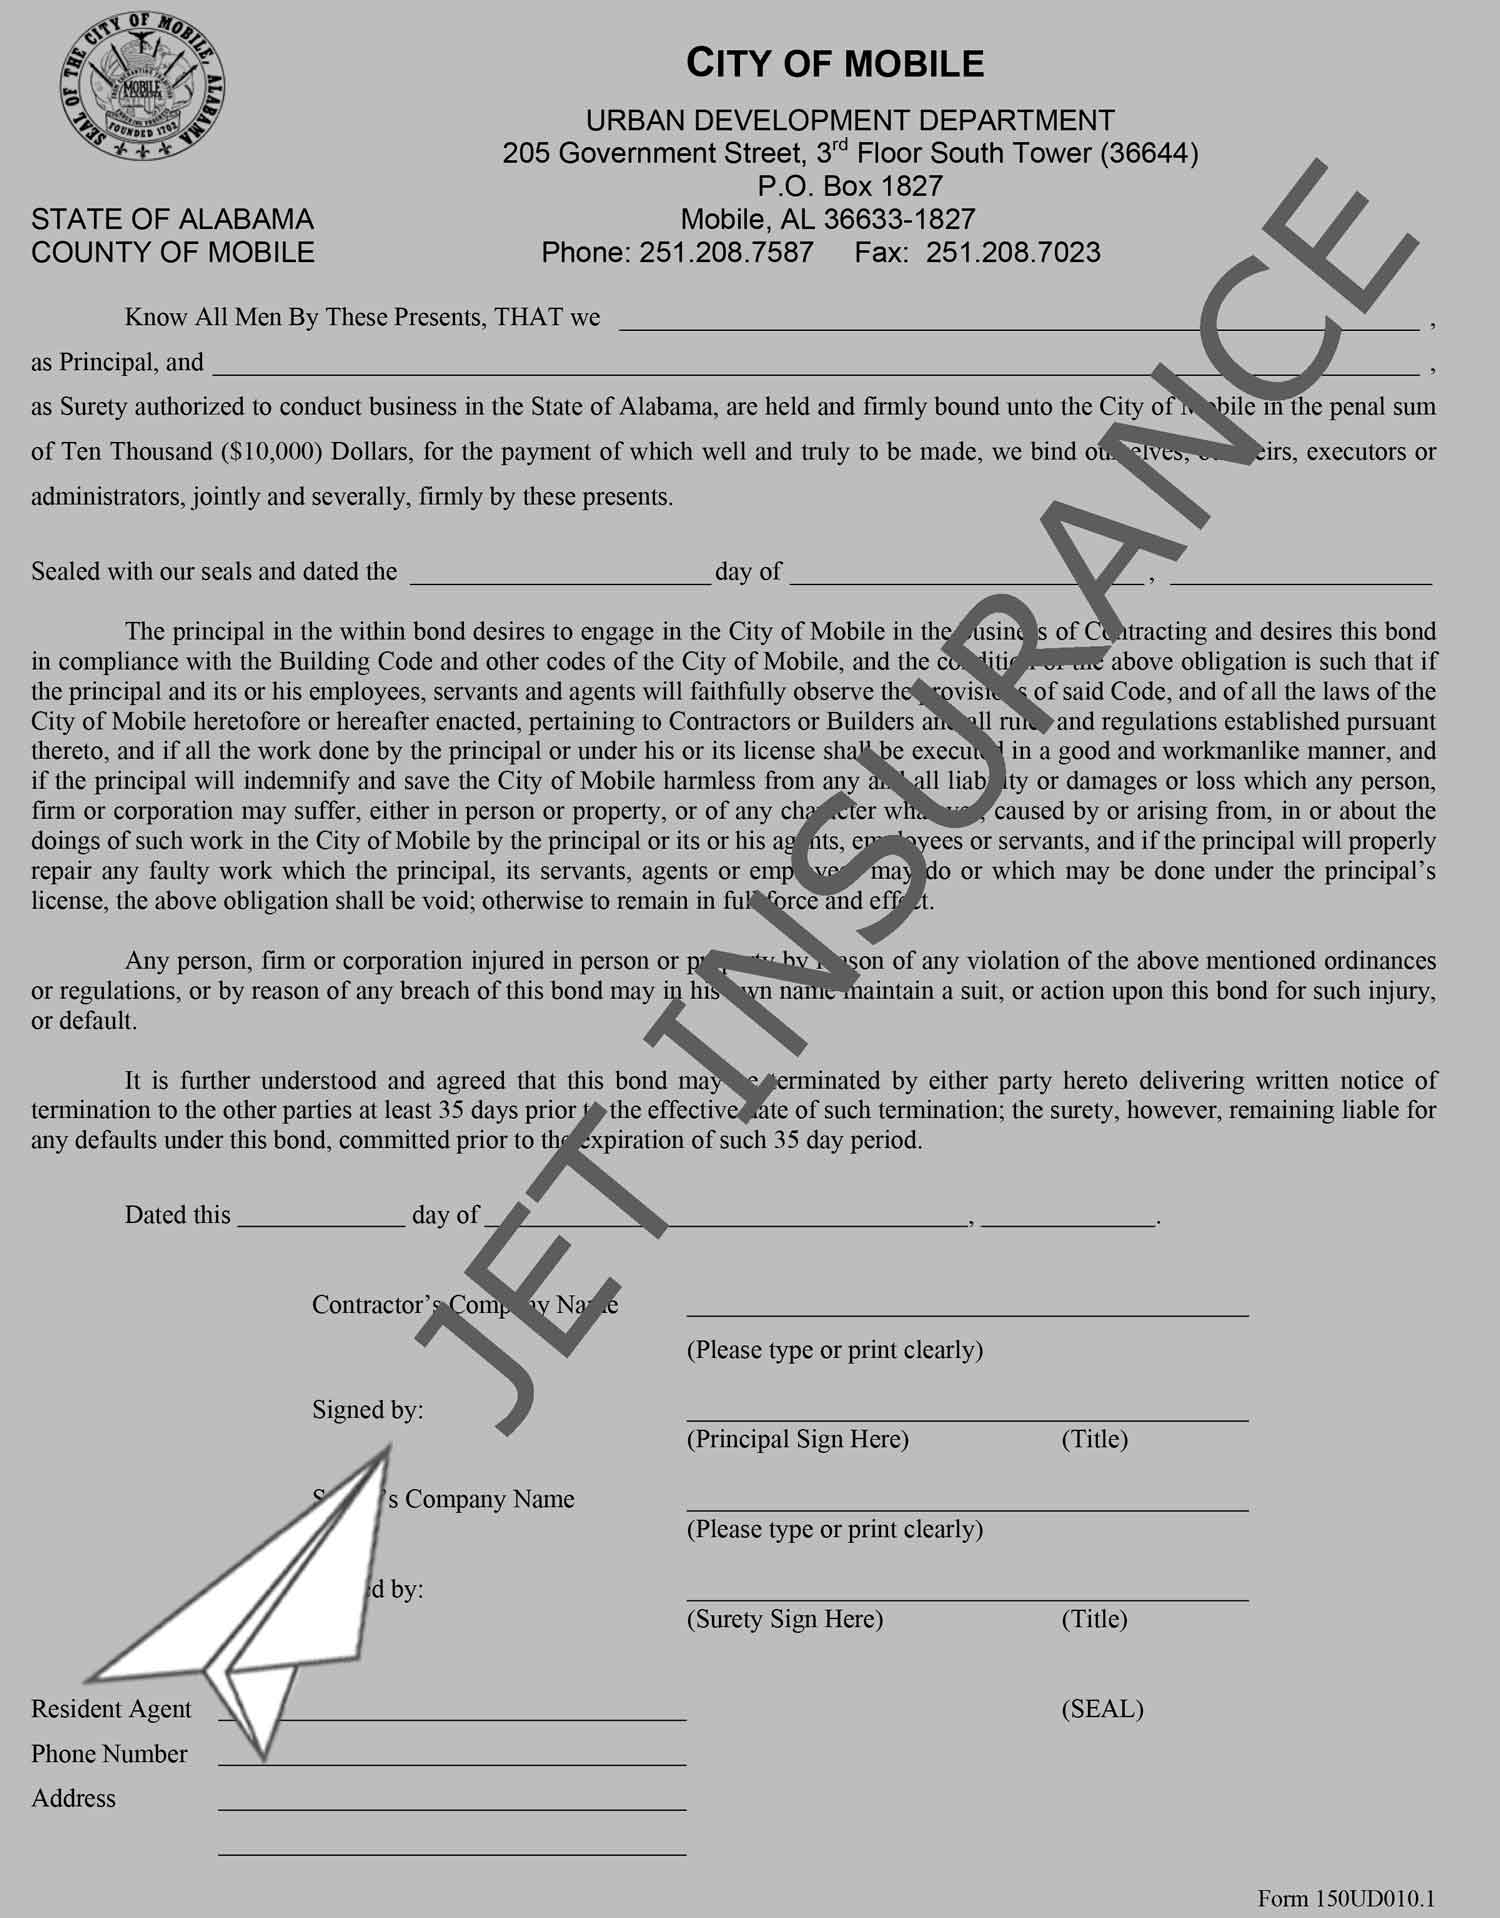 City of Mobile Contractor Bond Form